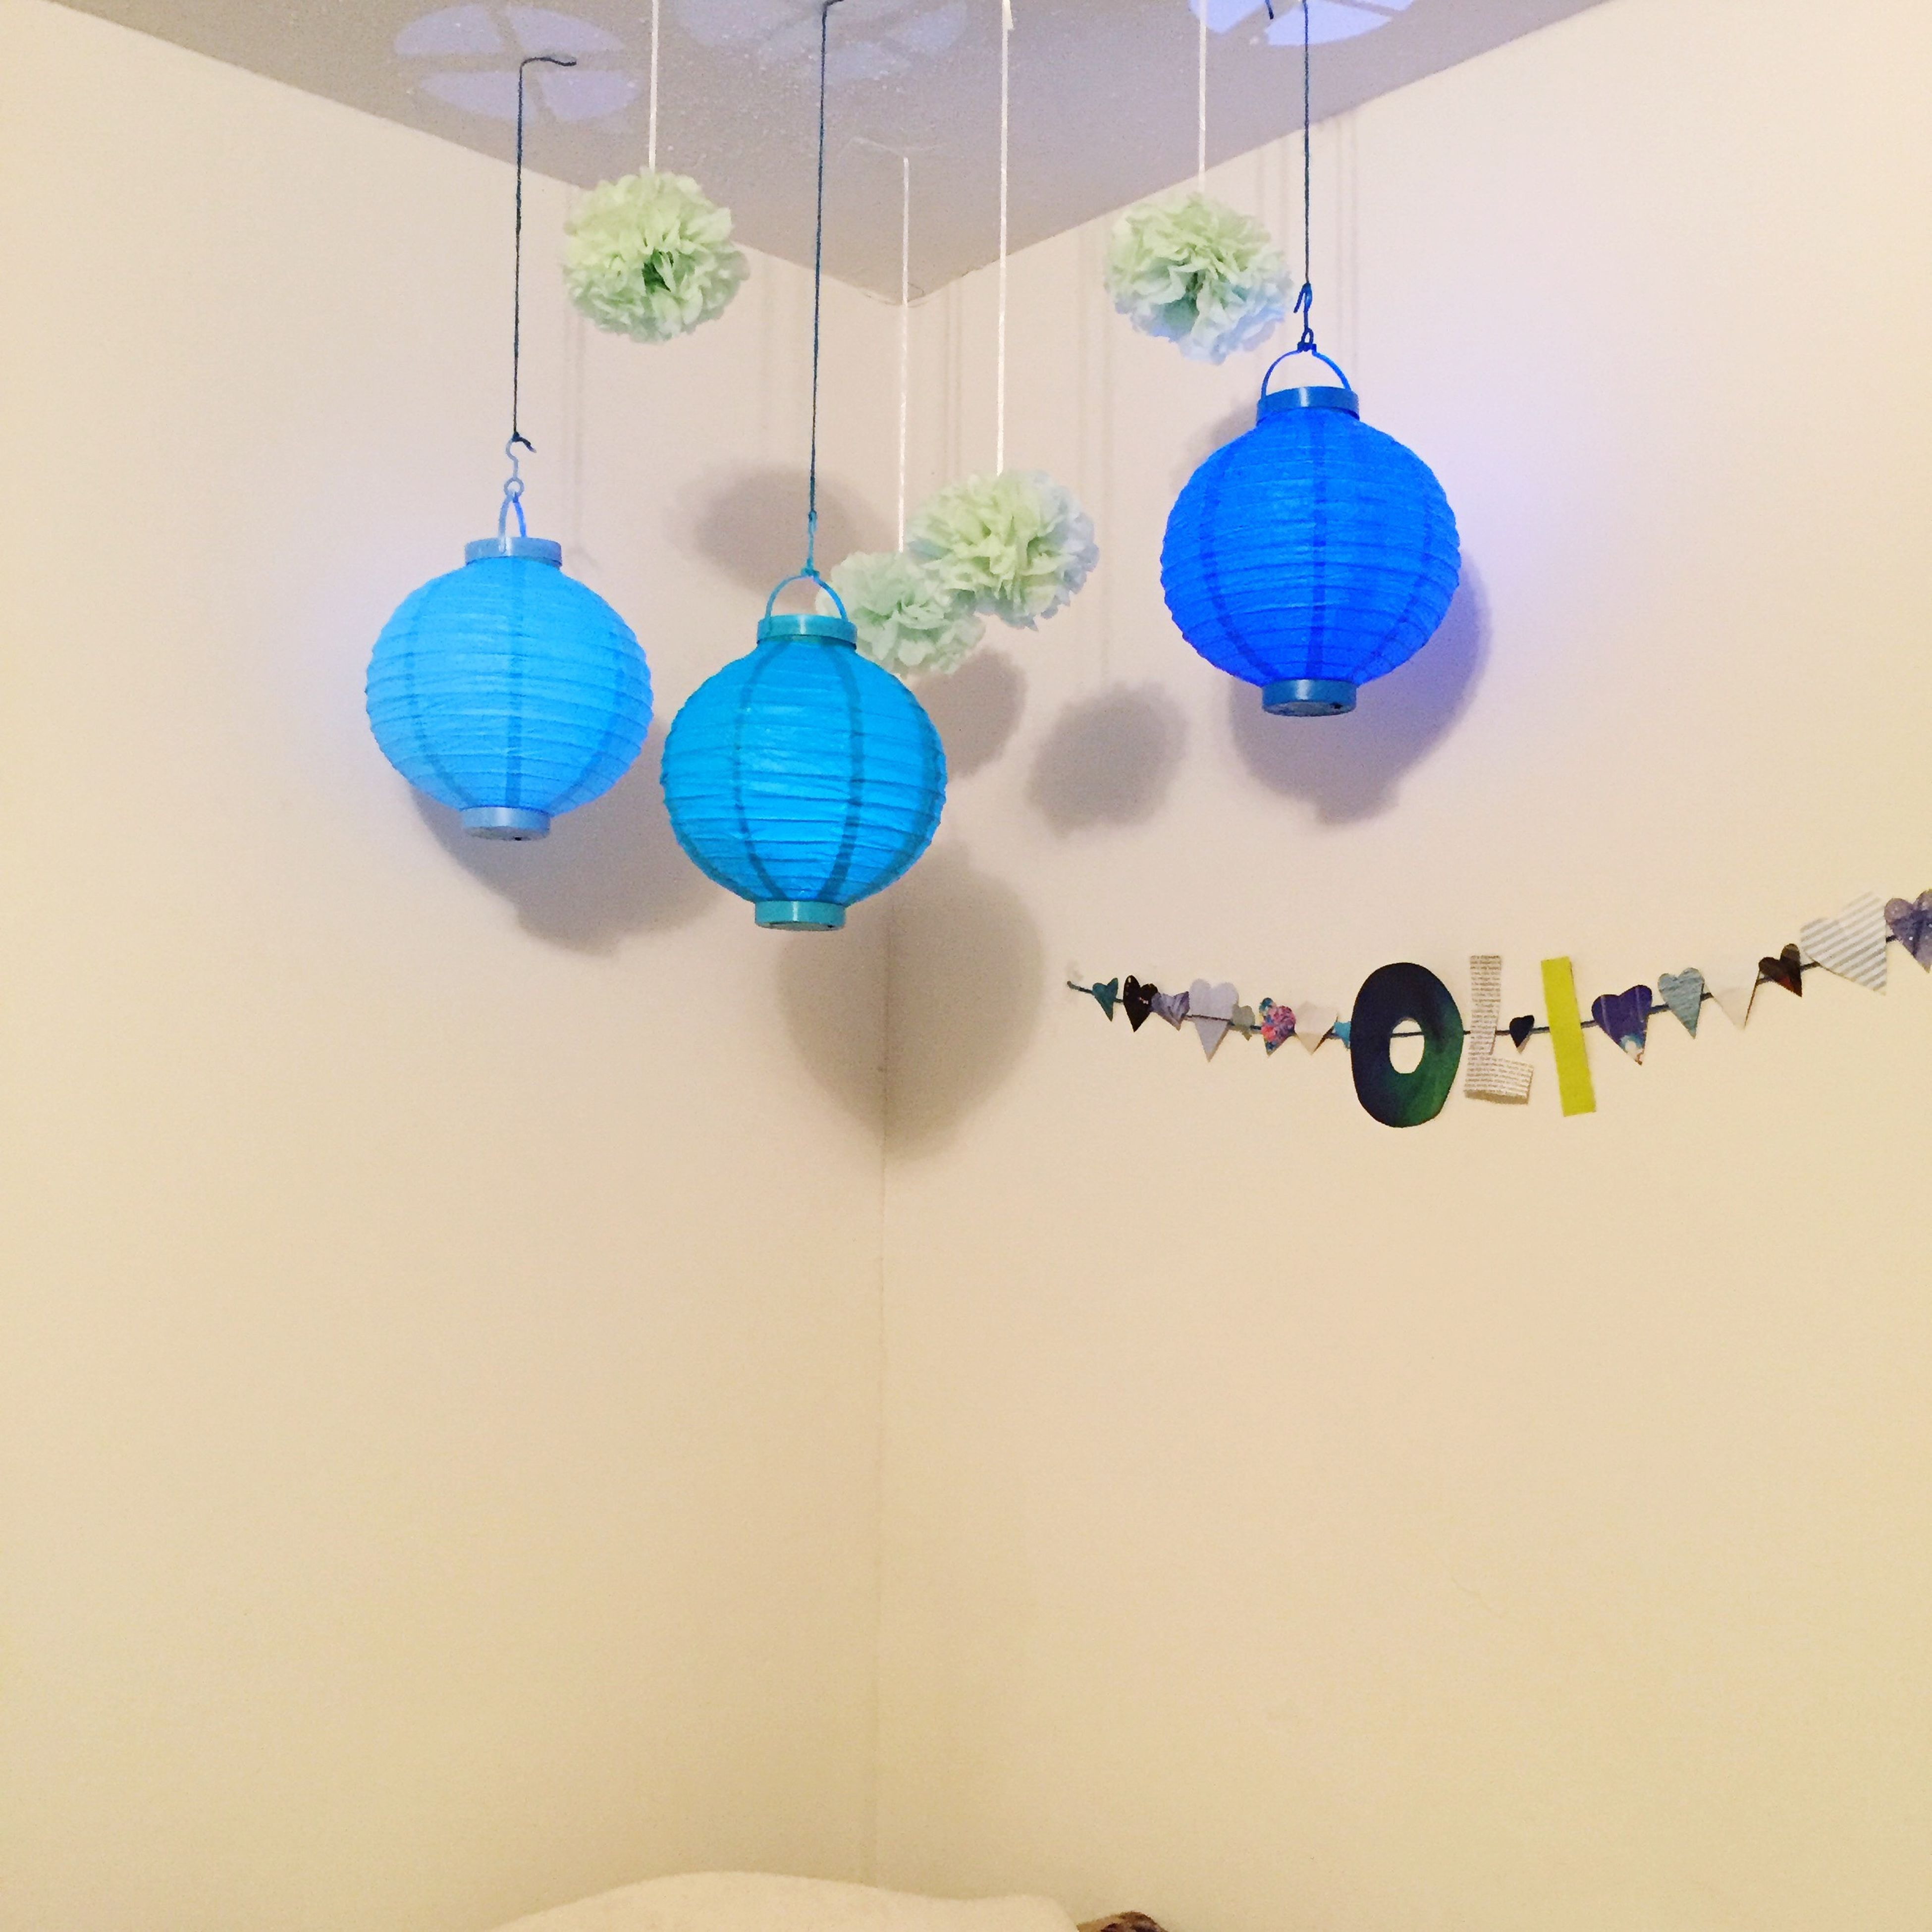 indoors, text, hanging, western script, multi colored, communication, wall - building feature, decoration, lighting equipment, no people, wall, blue, variation, heart shape, close-up, white color, built structure, creativity, paper, in a row